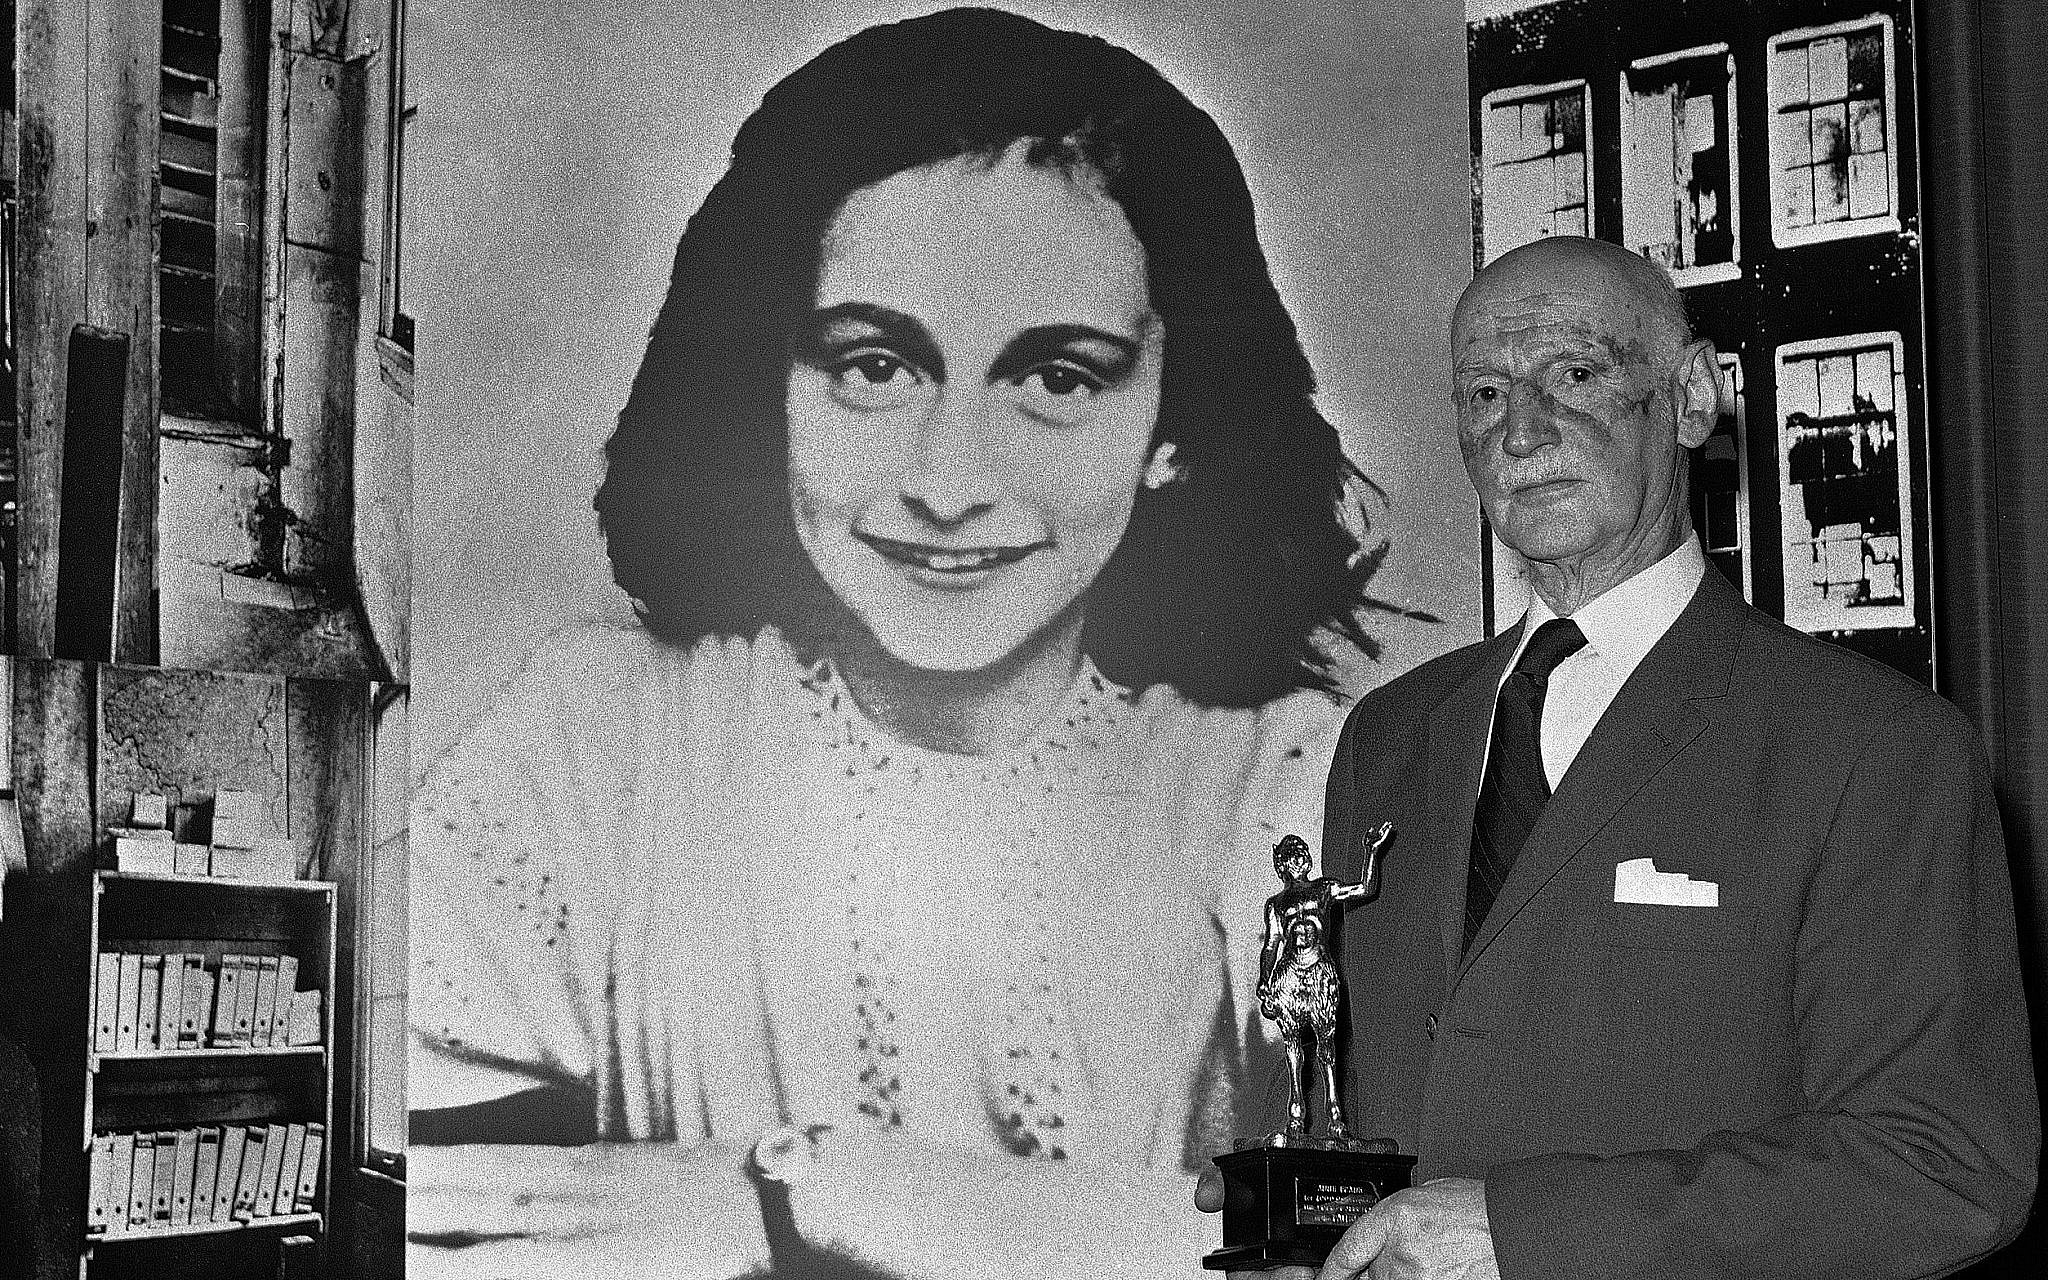 Anne Frank family tried to escape to US